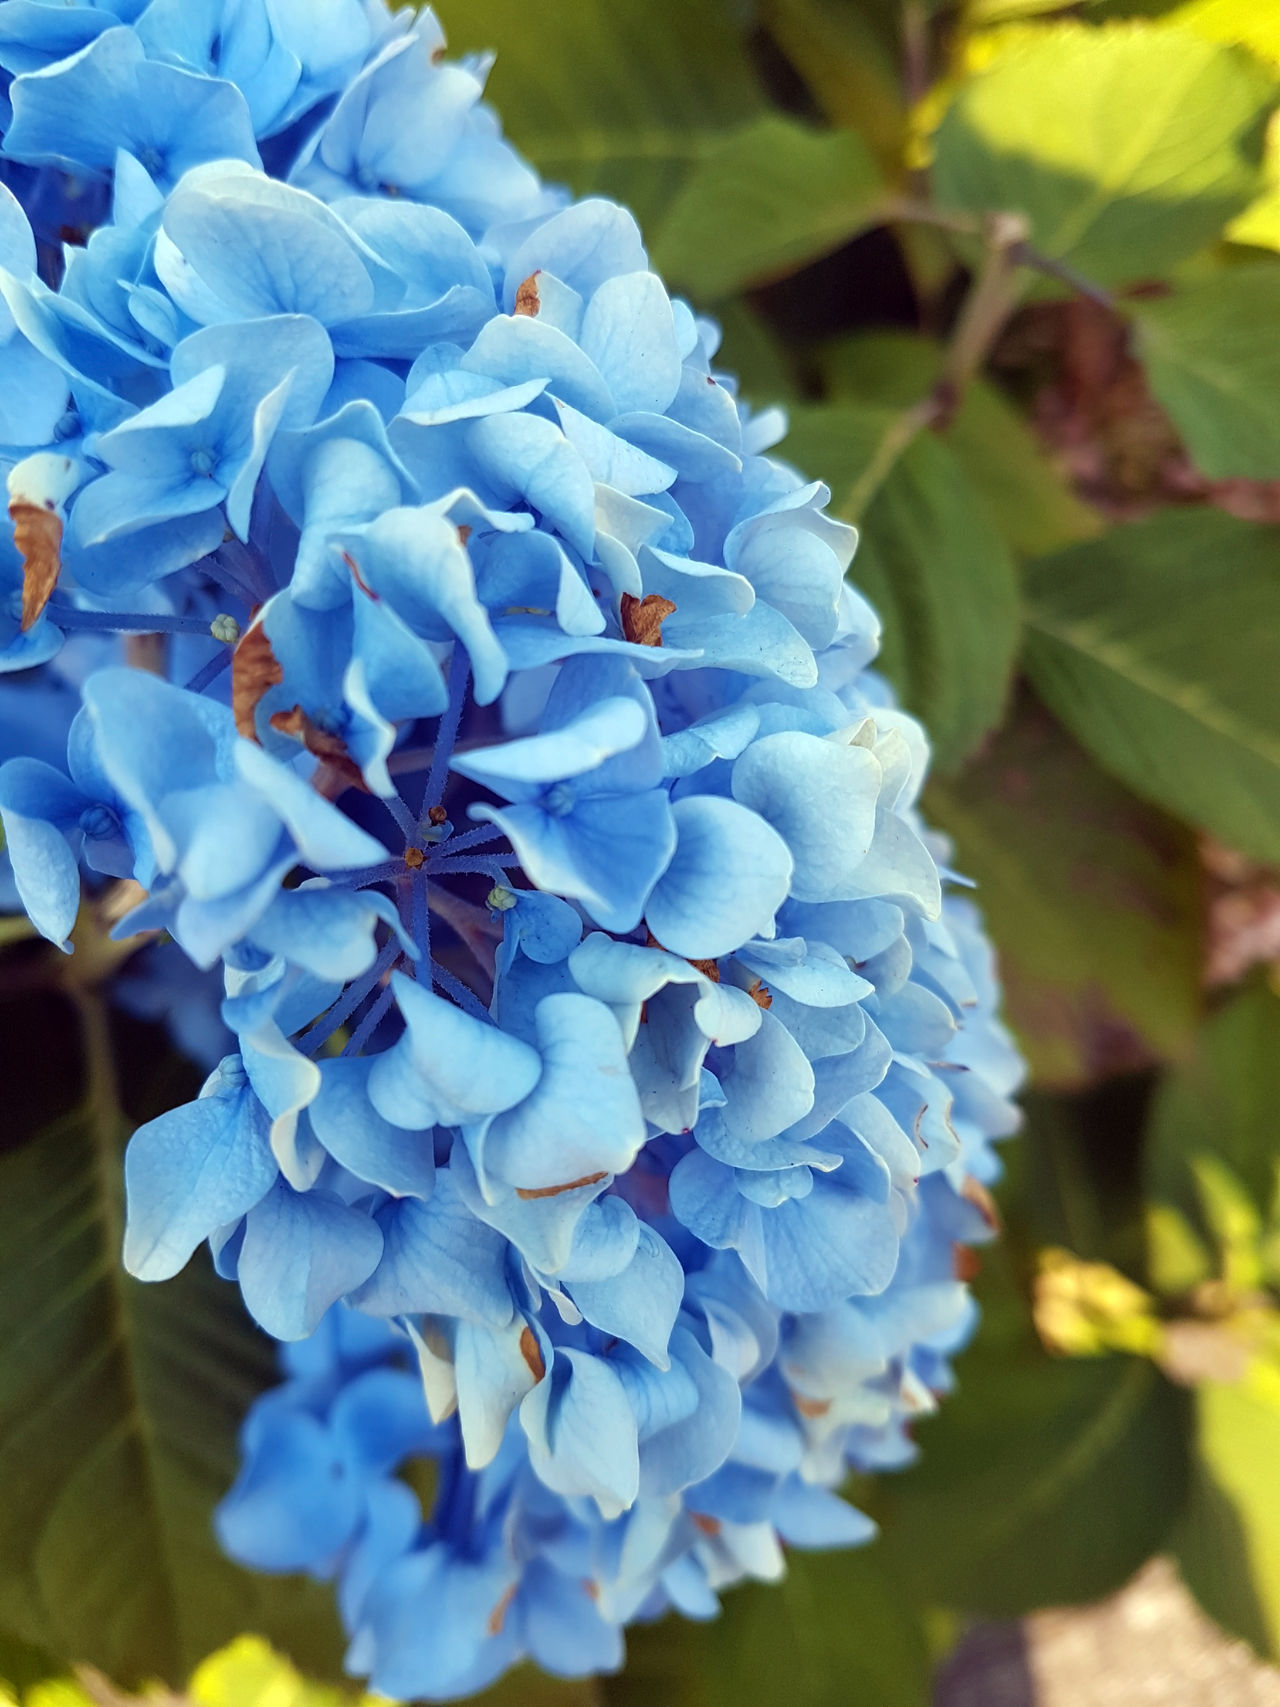 hydrangea close up Beauty In Nature Blooming Blossom Blue Botany Close-up Day Flower Flower Head Focus On Foreground Fragility Freshness Growing Growth Hydrangea Hydrangea Flower Hydrangea In Bloom Hydrangea Macrophylla In Bloom Nature Petal Plant Selective Focus Softness Springtime